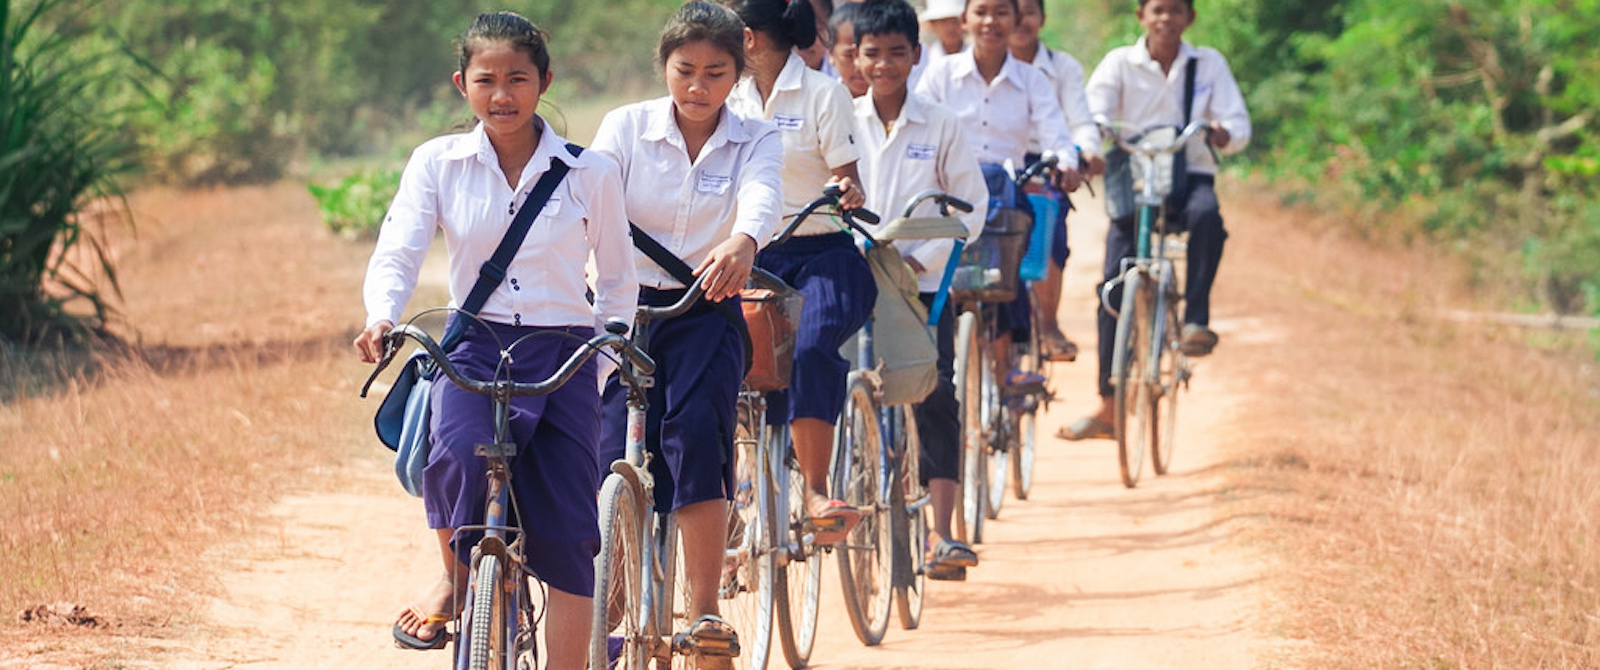 Acknowledging the wrongs of the past has meant finding ways to engage with Cambodia's youth (Photo: Beneath the Sun/ Flickr)